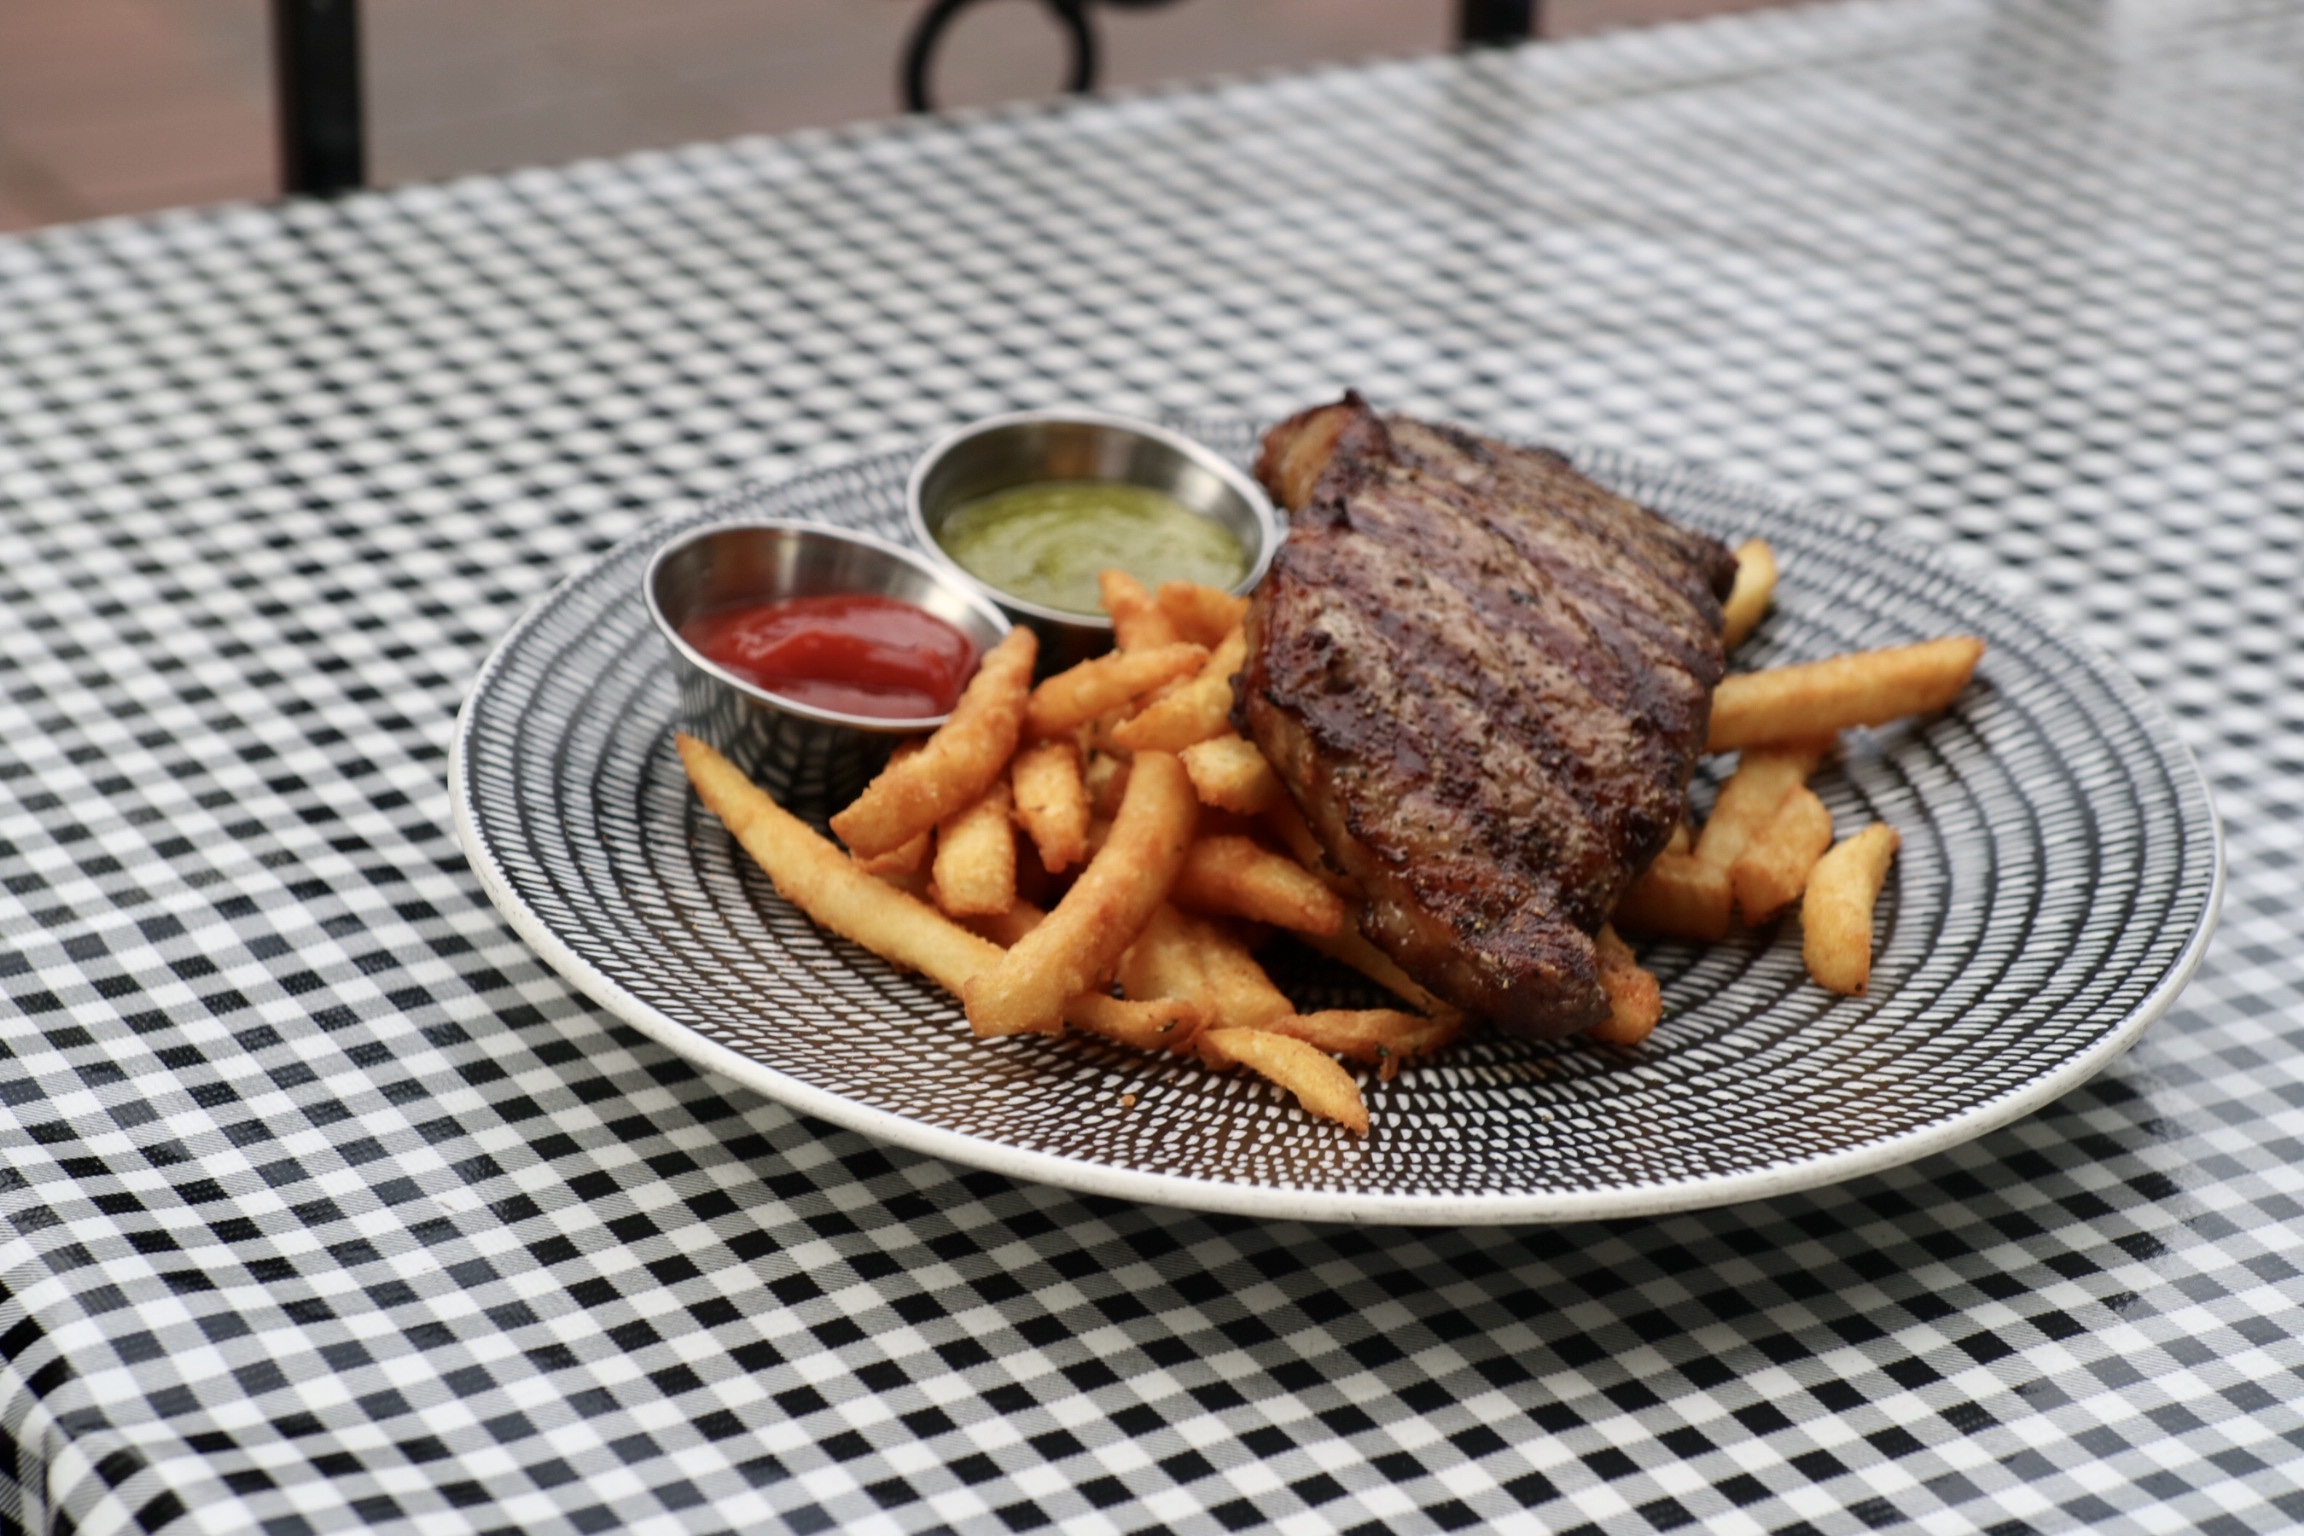 New York Steak & Frites @ Water St Cafe